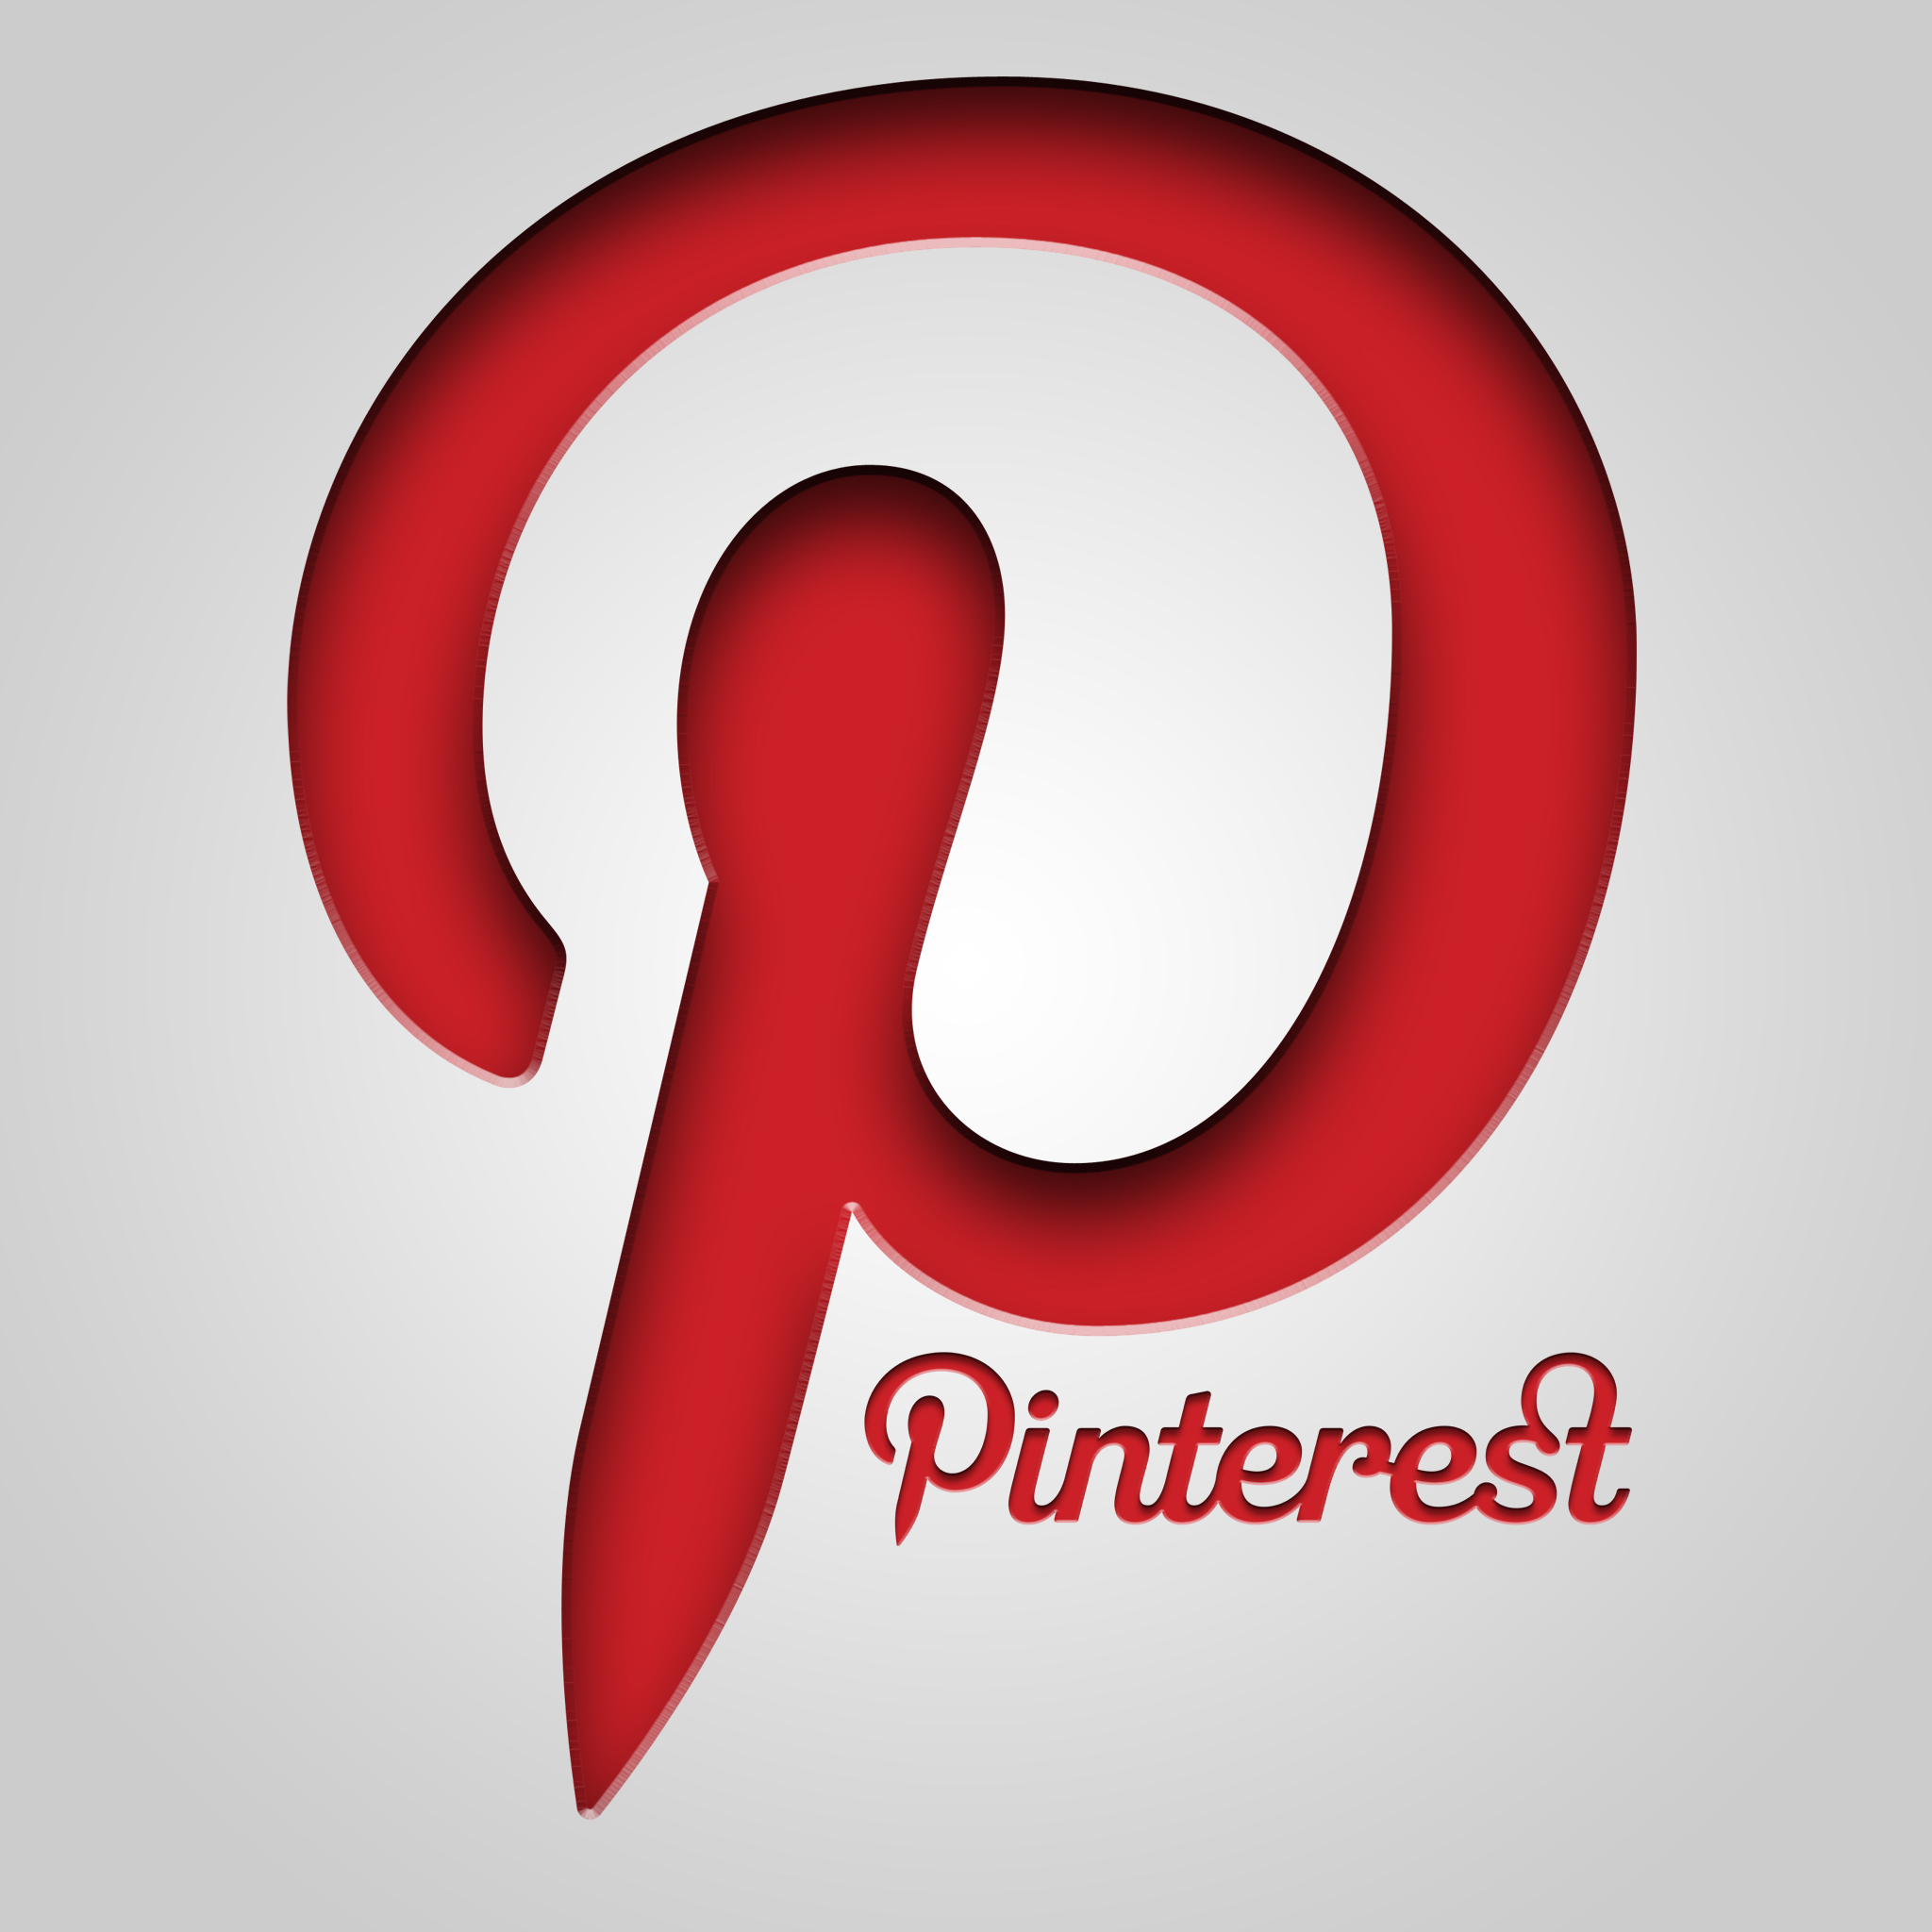 Get More 30 Ways To Get More Pinterest Followers Smart Online Success